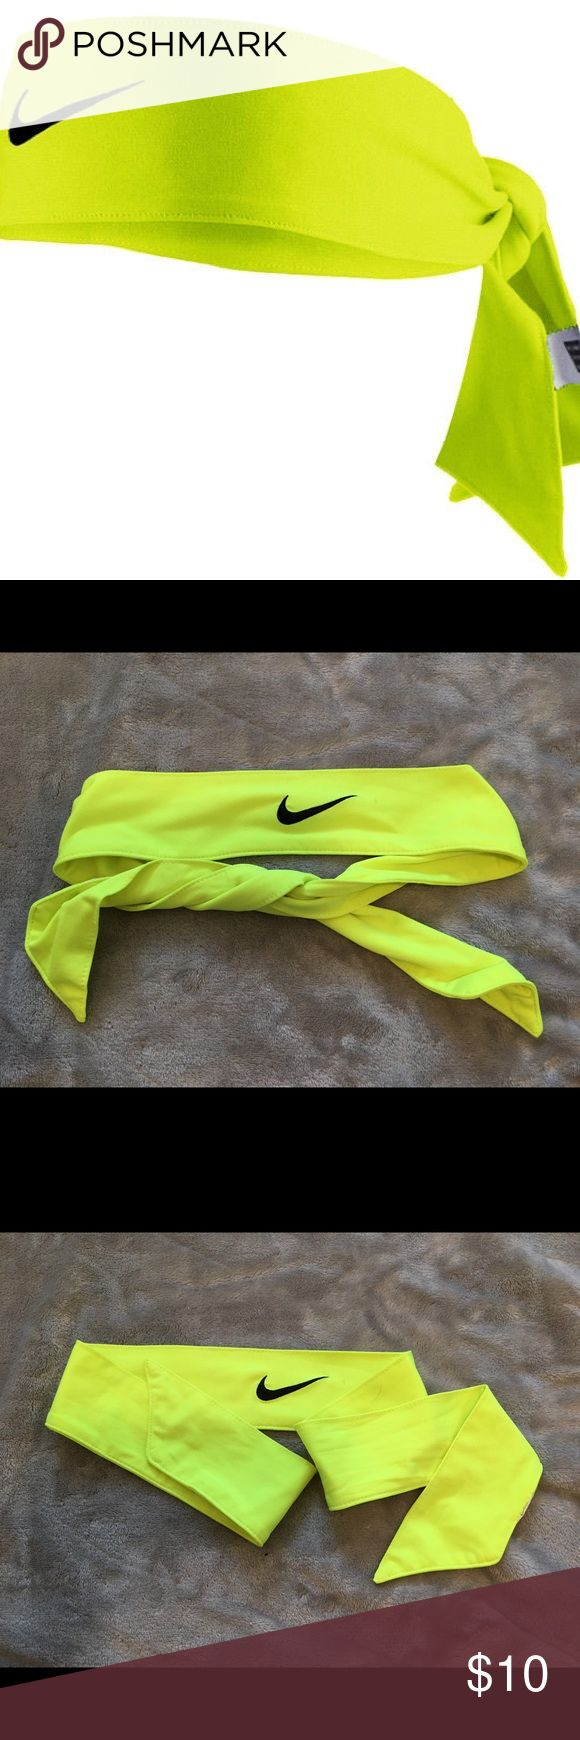 Nike Dri-Fit 2.0 Soccer / Tennis headband - Neon Cute head band for any sports activity. Ties in the back giving you custom fit! Loved this for soccer it's been washed and only worn a few times 💕 make me decent offers !! Nike Accessories Hair Accessories